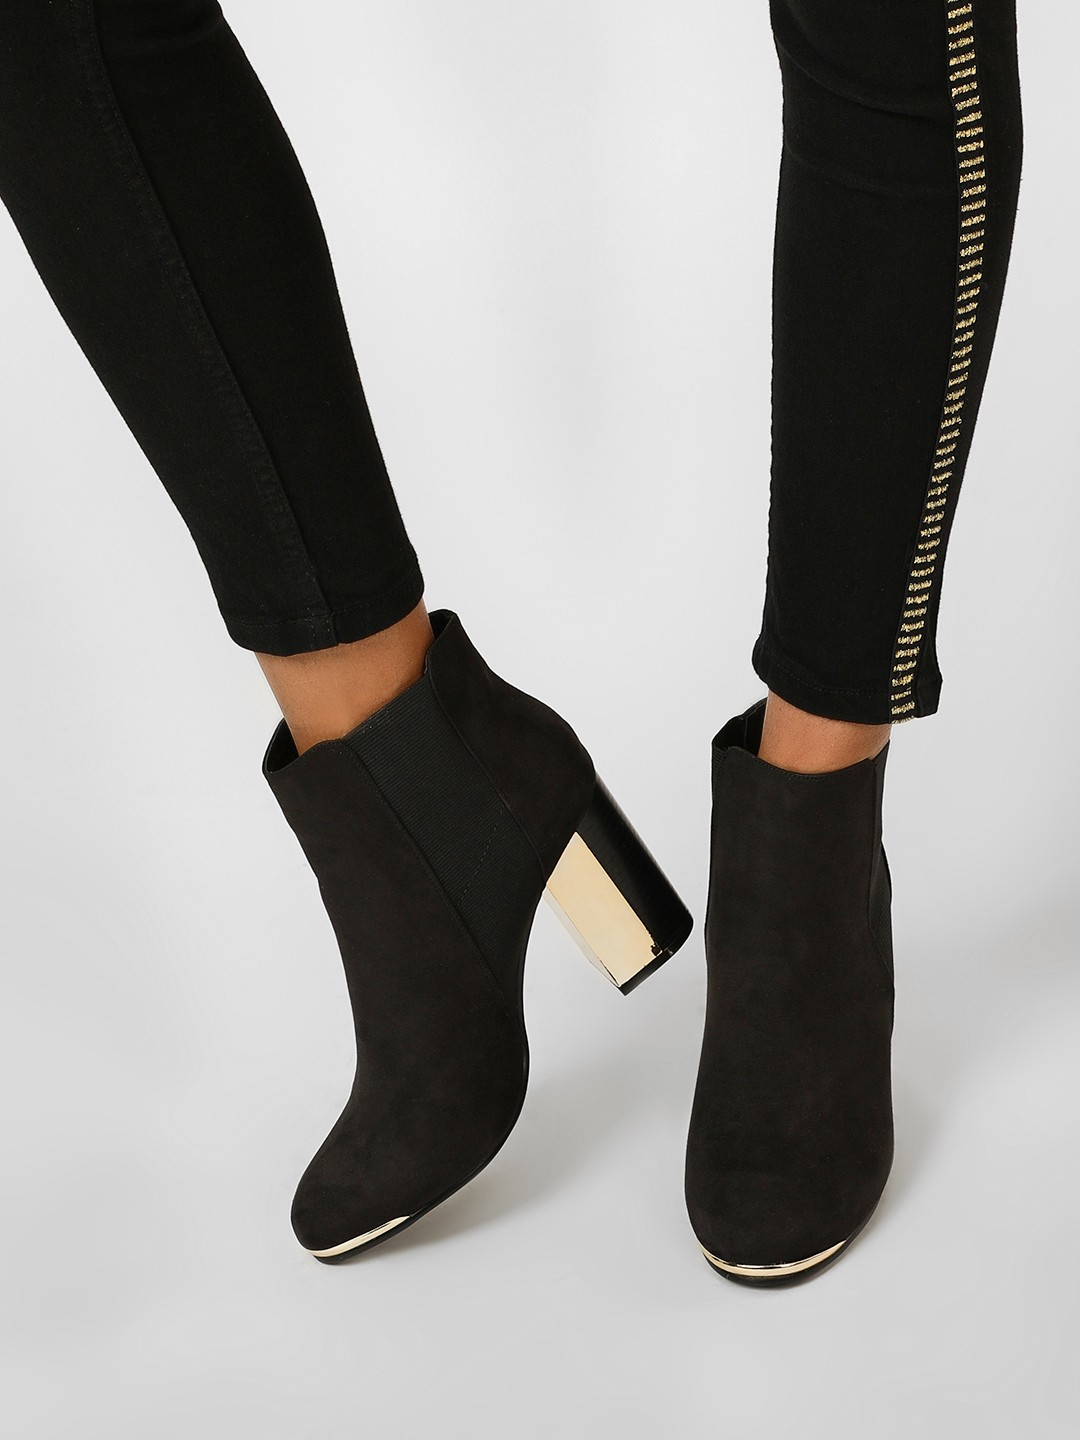 Truffle Collection Black Suede Gusset Ankle Heel Boots 1